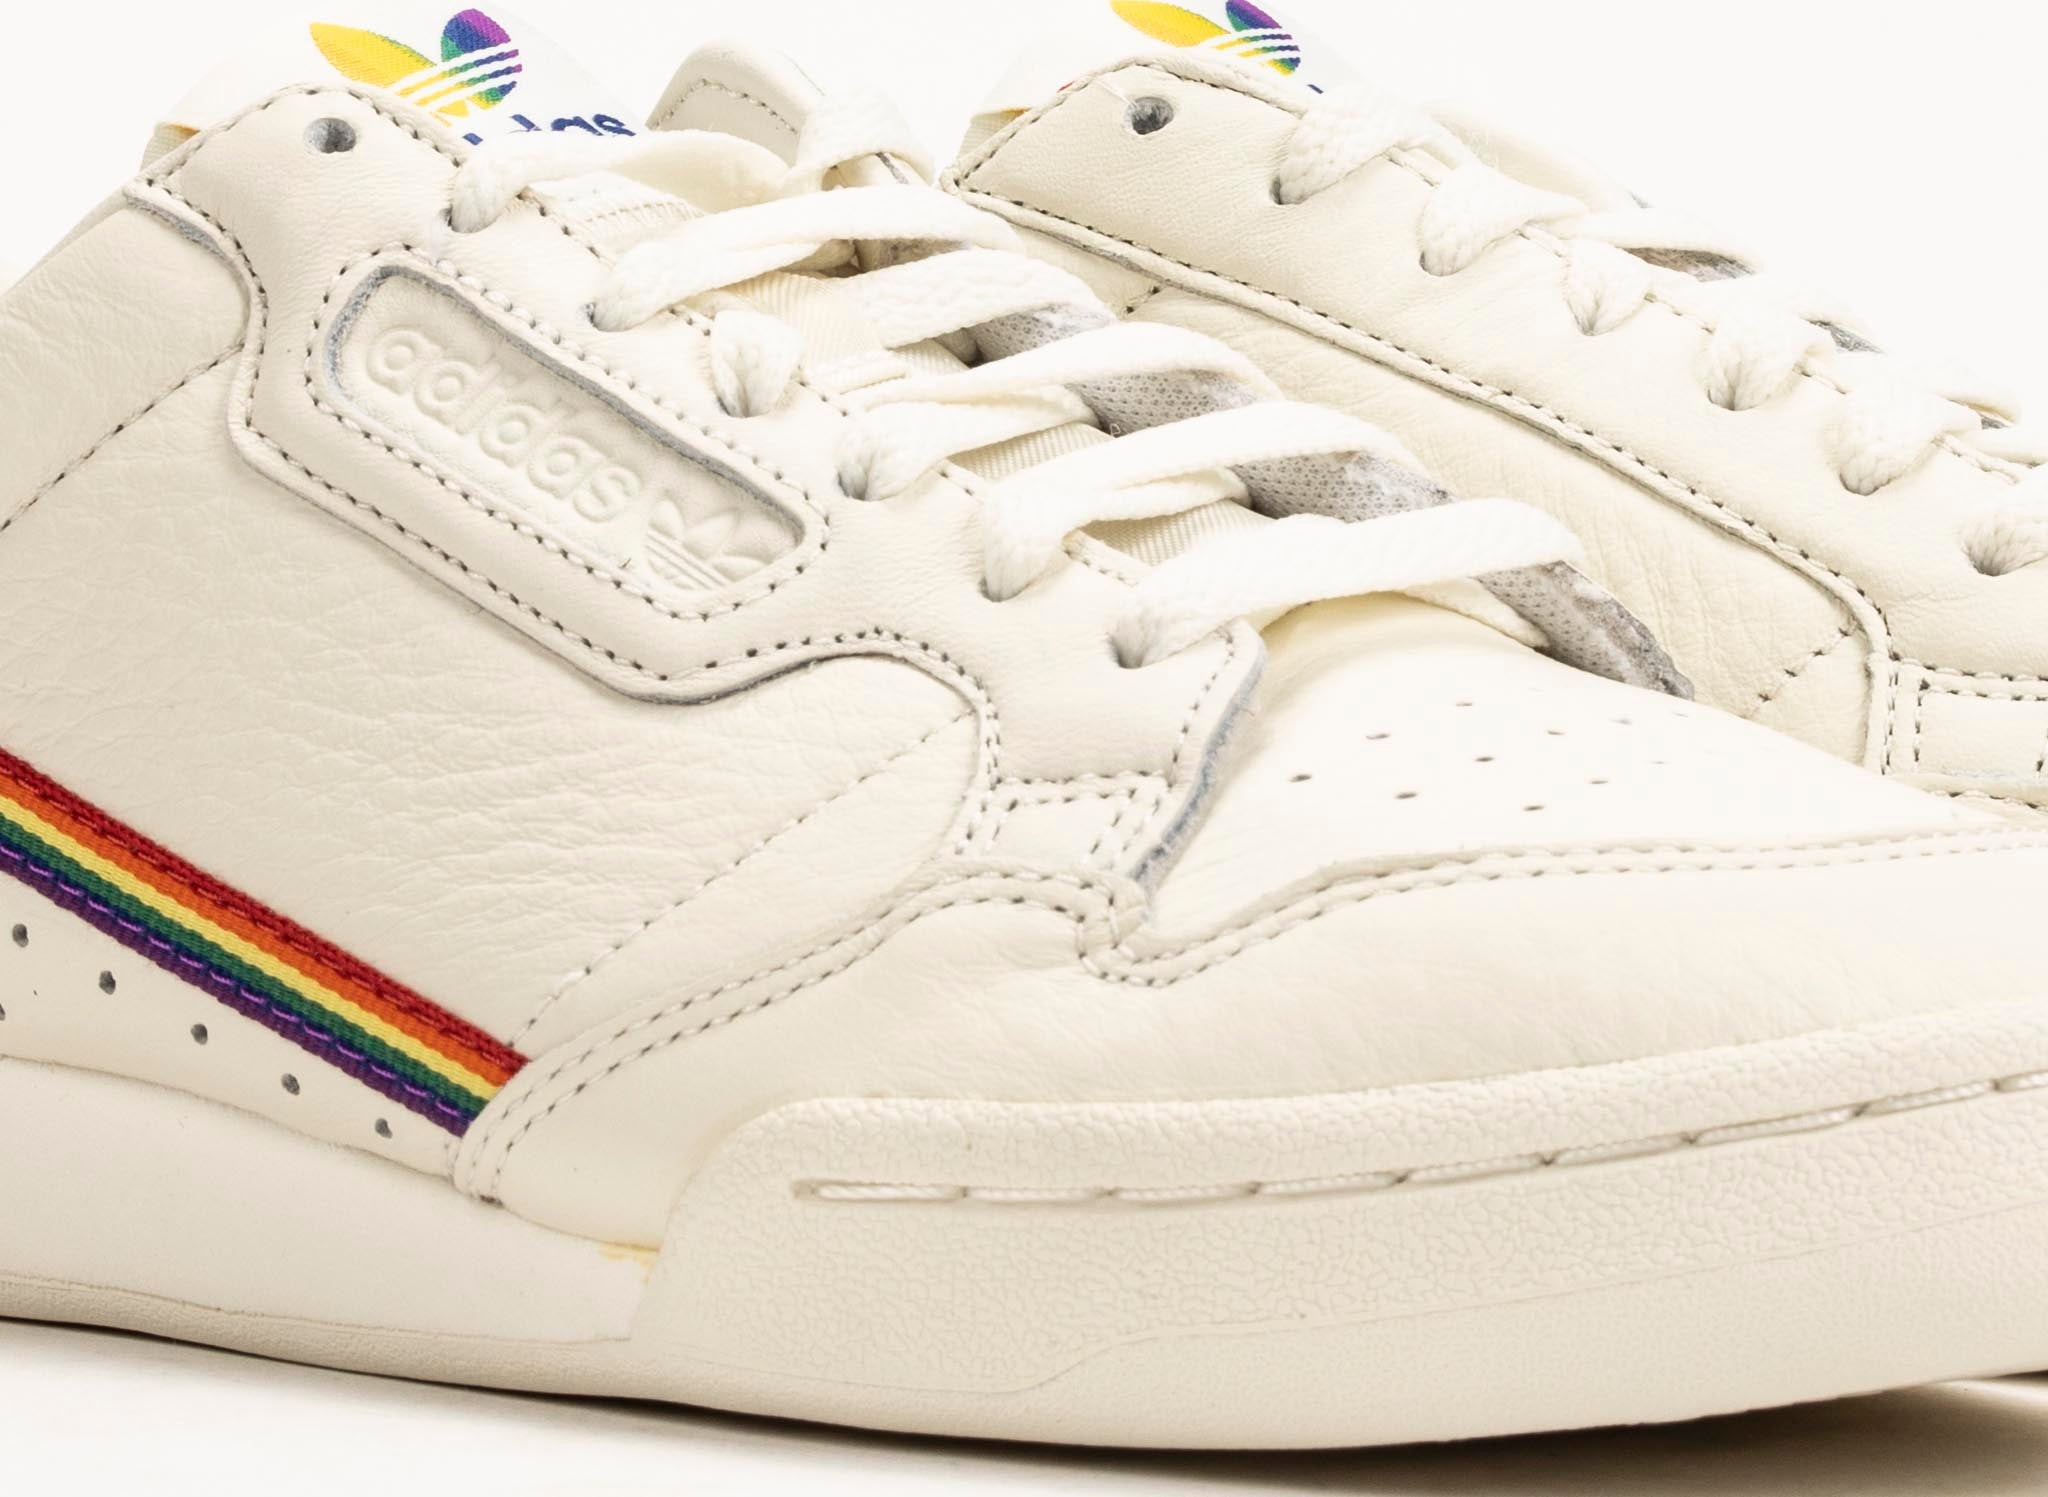 adidas Continental 80 'Pride' - Oneness